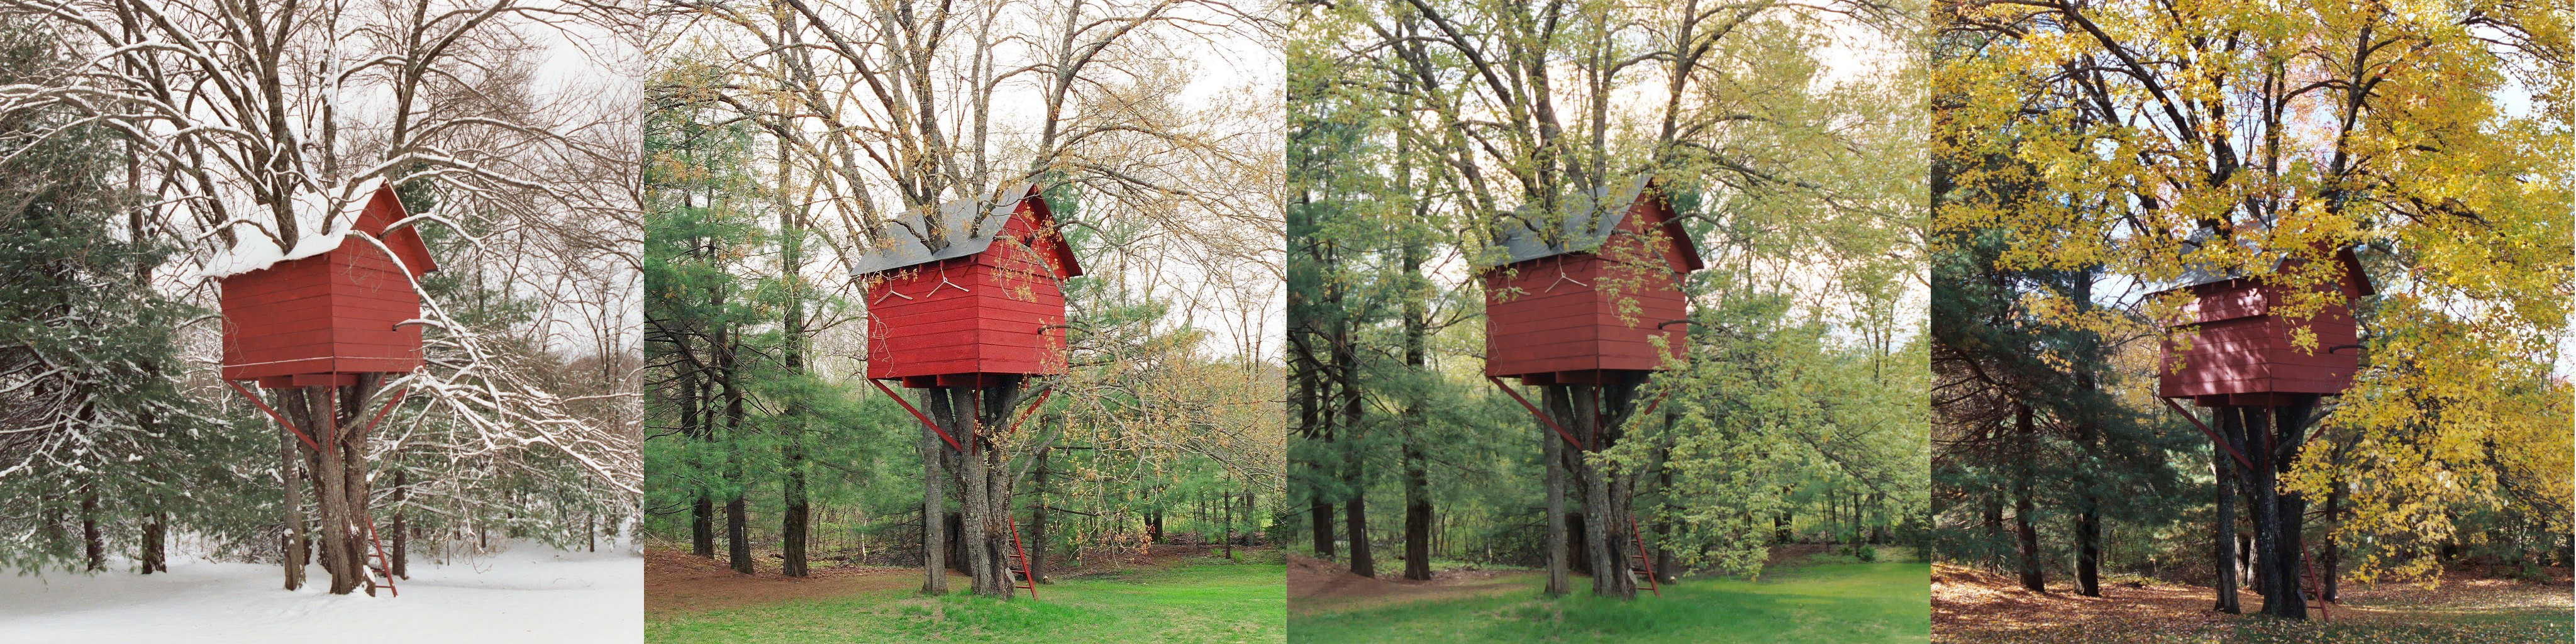 In the summer of 2003 and 2004, the perfect treehouse took shape in a four-stem maple in the back yard of a house in Acton, MA. The treehouse was built by Erik J. Heels and his three children: Sam, Ben, and Sonja. Shown here in all four seasons: winter, spring, summer, fall.